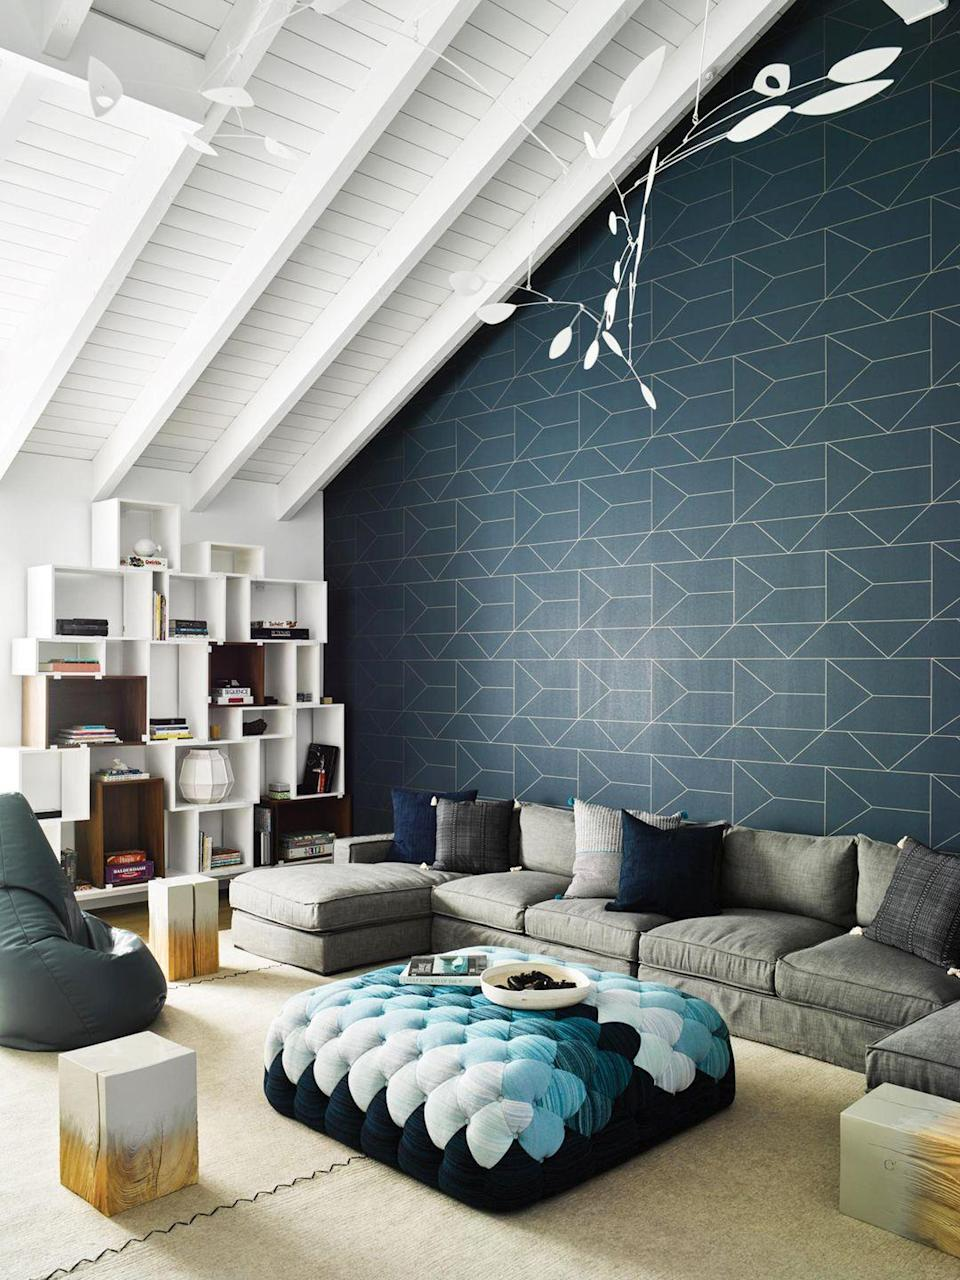 "<p>When the play space is also the media room, family room, and possibly even the living room, invest in staples that feel timeless—this neutral and spacious sectional in one of <a href=""https://www.nicolehollis.com/"" rel=""nofollow noopener"" target=""_blank"" data-ylk=""slk:NICOLEHOLLIS"" class=""link rapid-noclick-resp"">NICOLEHOLLIS</a>'s projects is perfect. Then choose decor (like lighting, and accent seats) that skew a little younger. Also, rounded, soft furniture is always a good idea if there are little ones around. </p>"